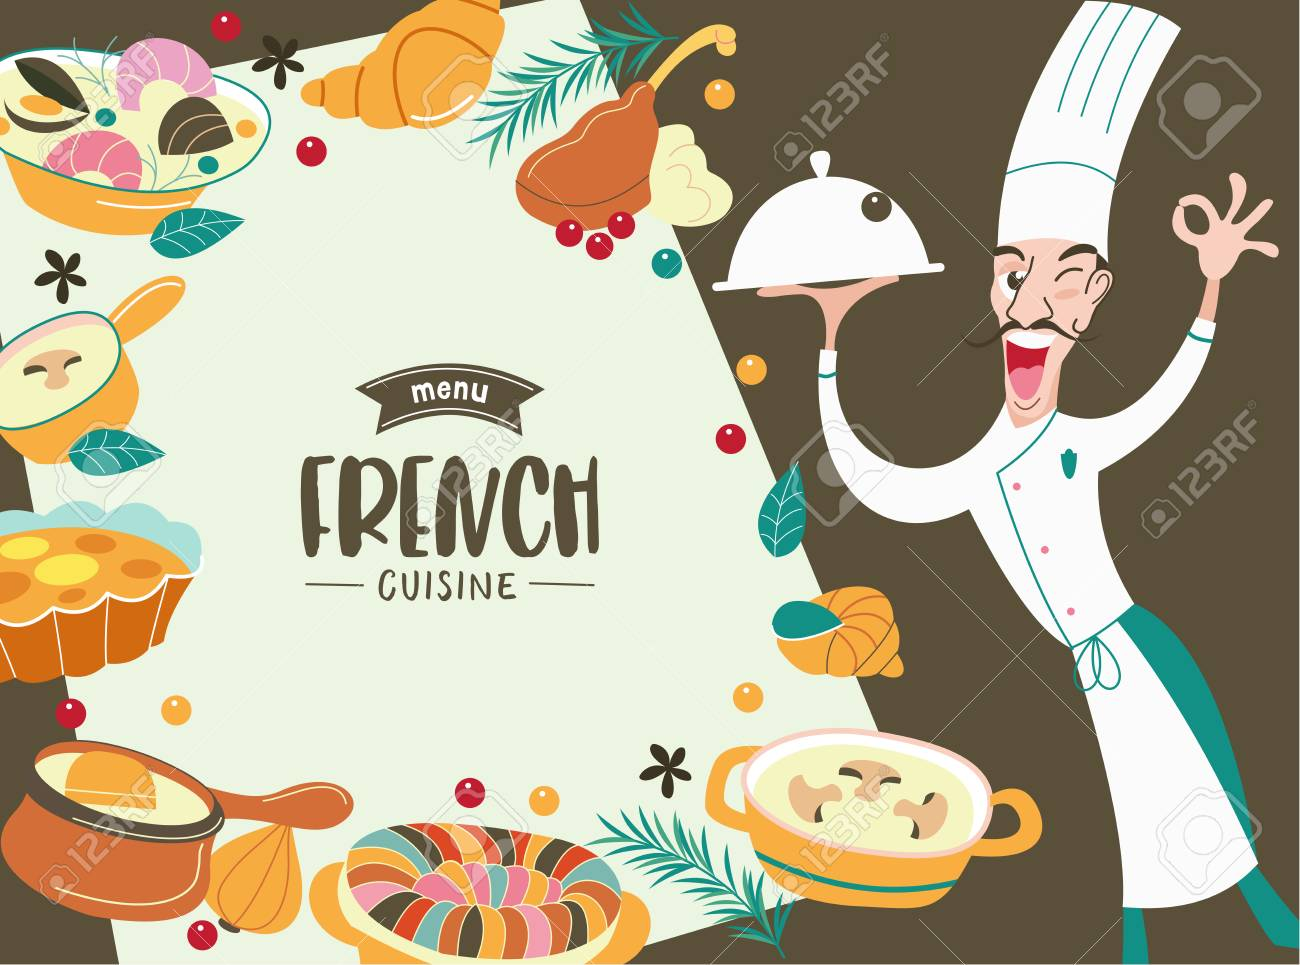 Chef cuisinier png / Cooking chef clipart / Cocinero png